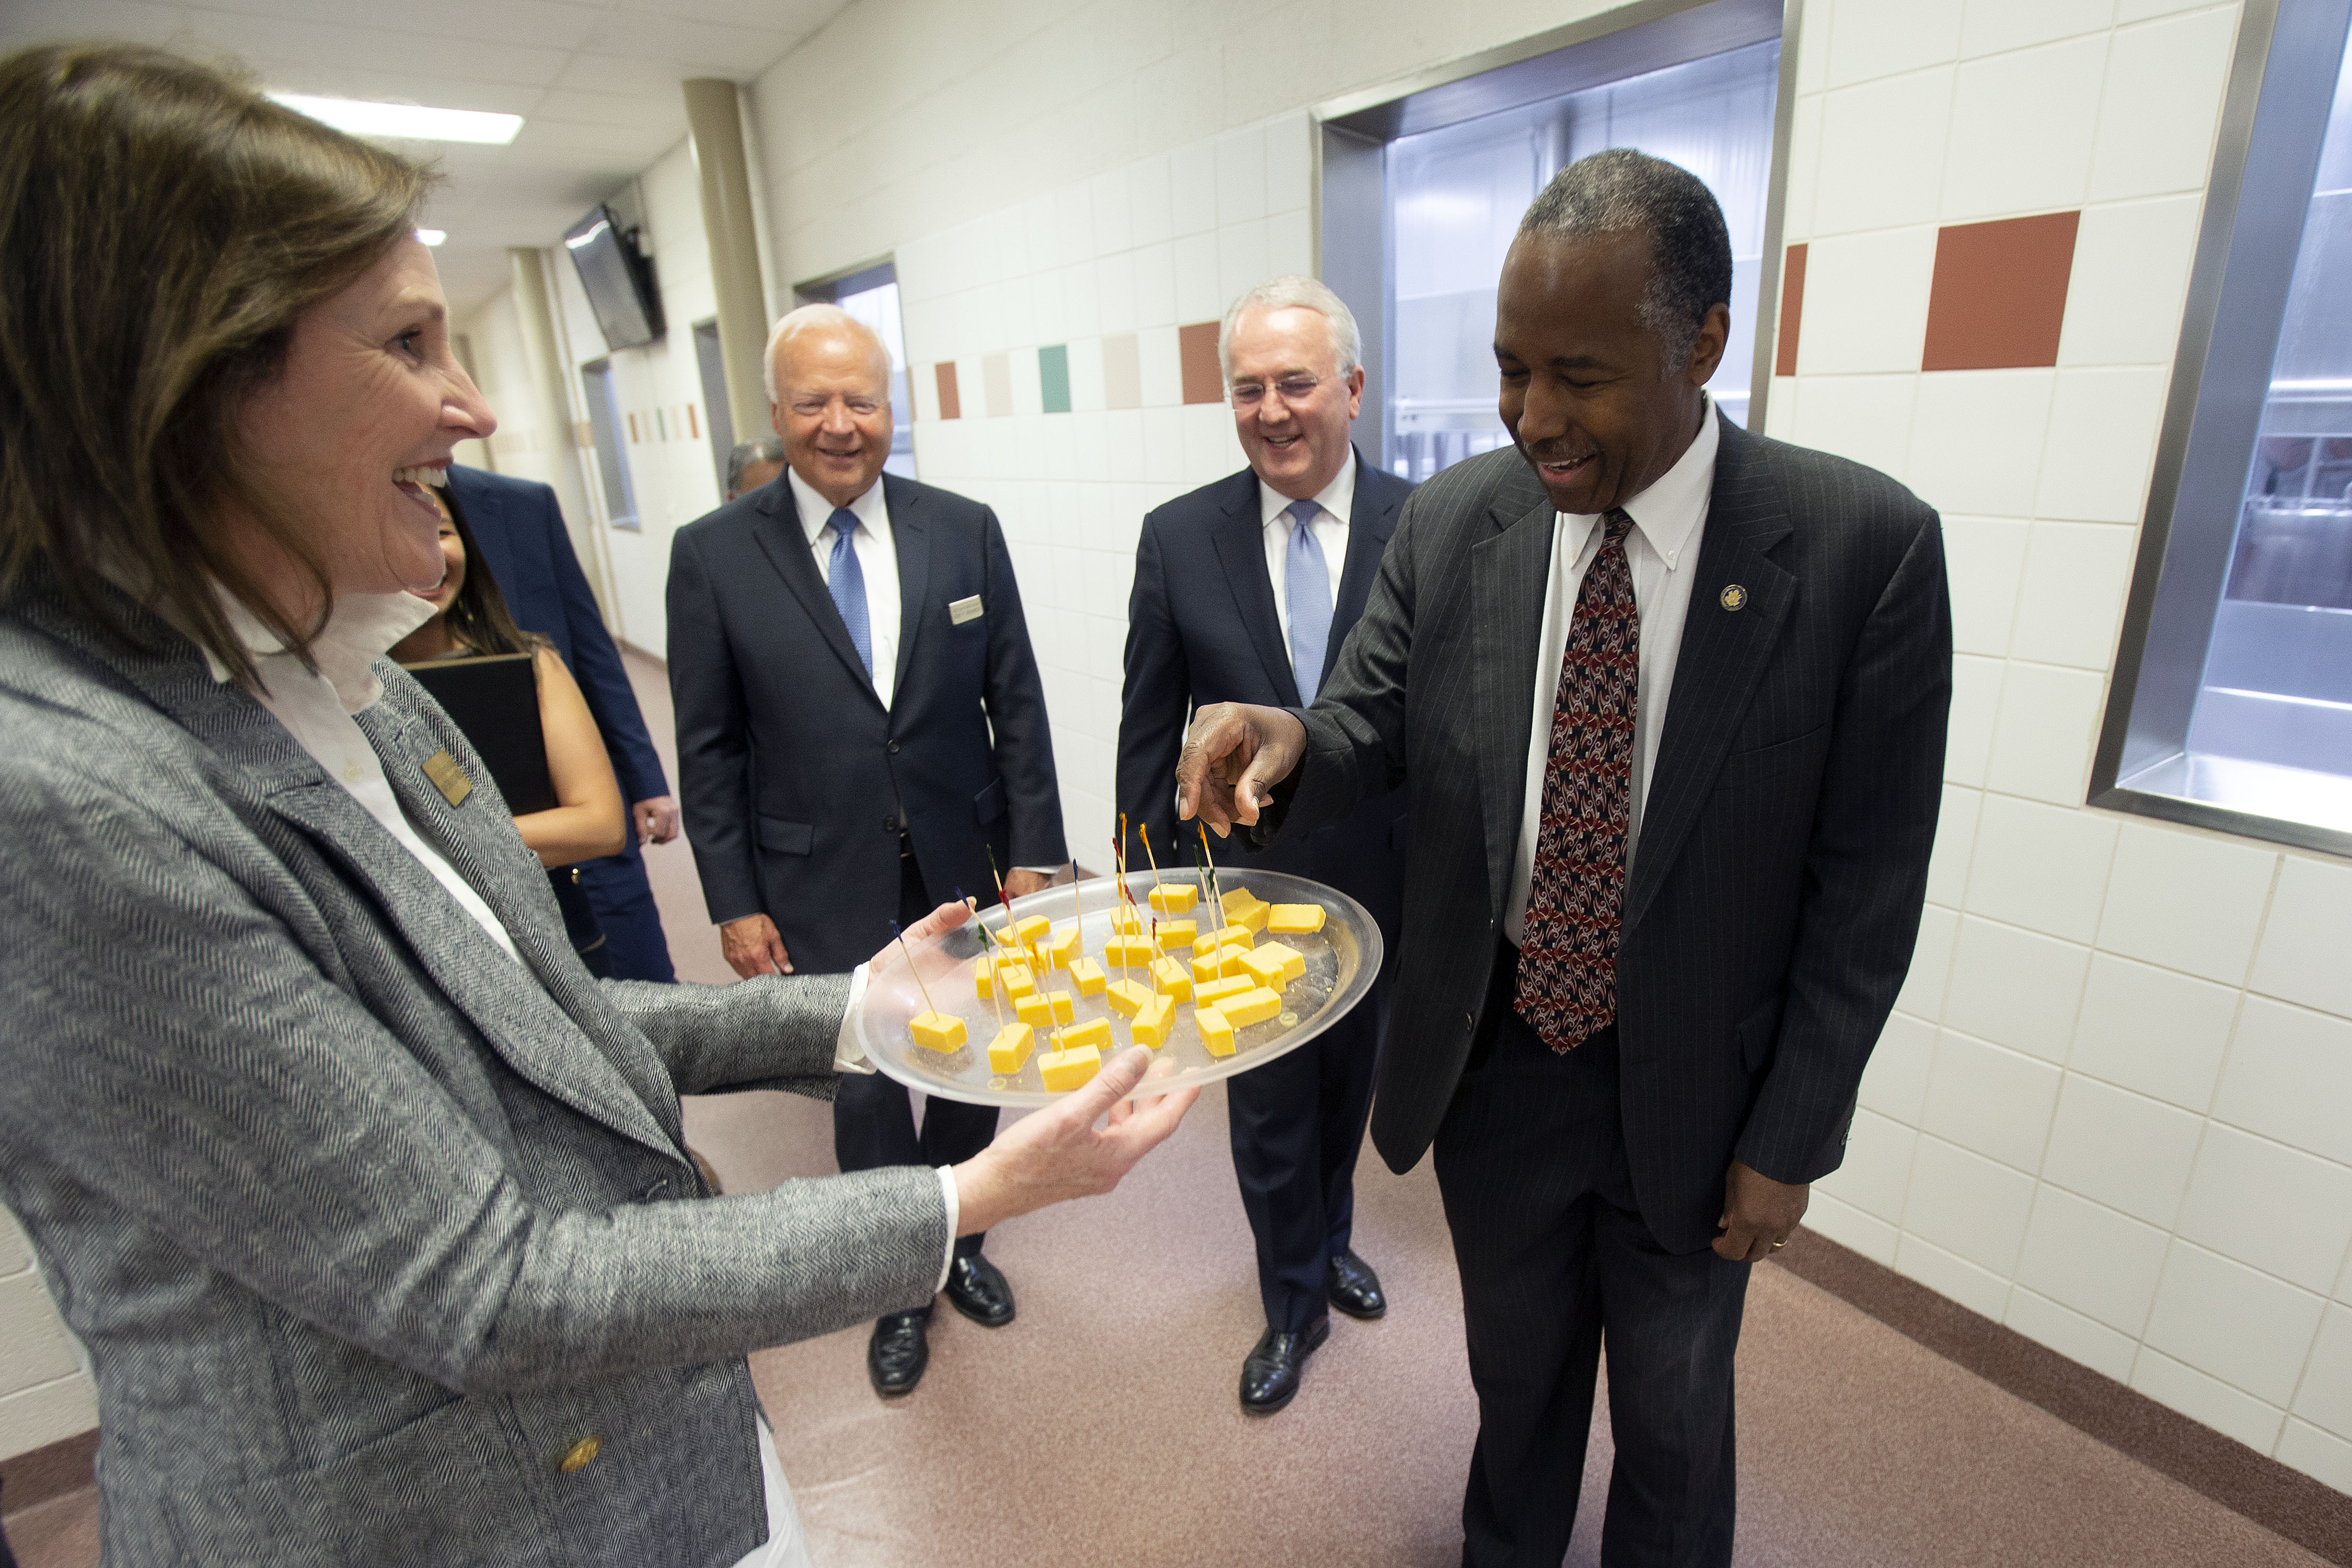 Sister Marsha Richards, wife of Elder Kent F. Richards, offers a cheese sample to HUD secretary Dr. Ben Carson at the Welfare Squares dairy facility in Salt Lake City, Utah, July 11, 2019.